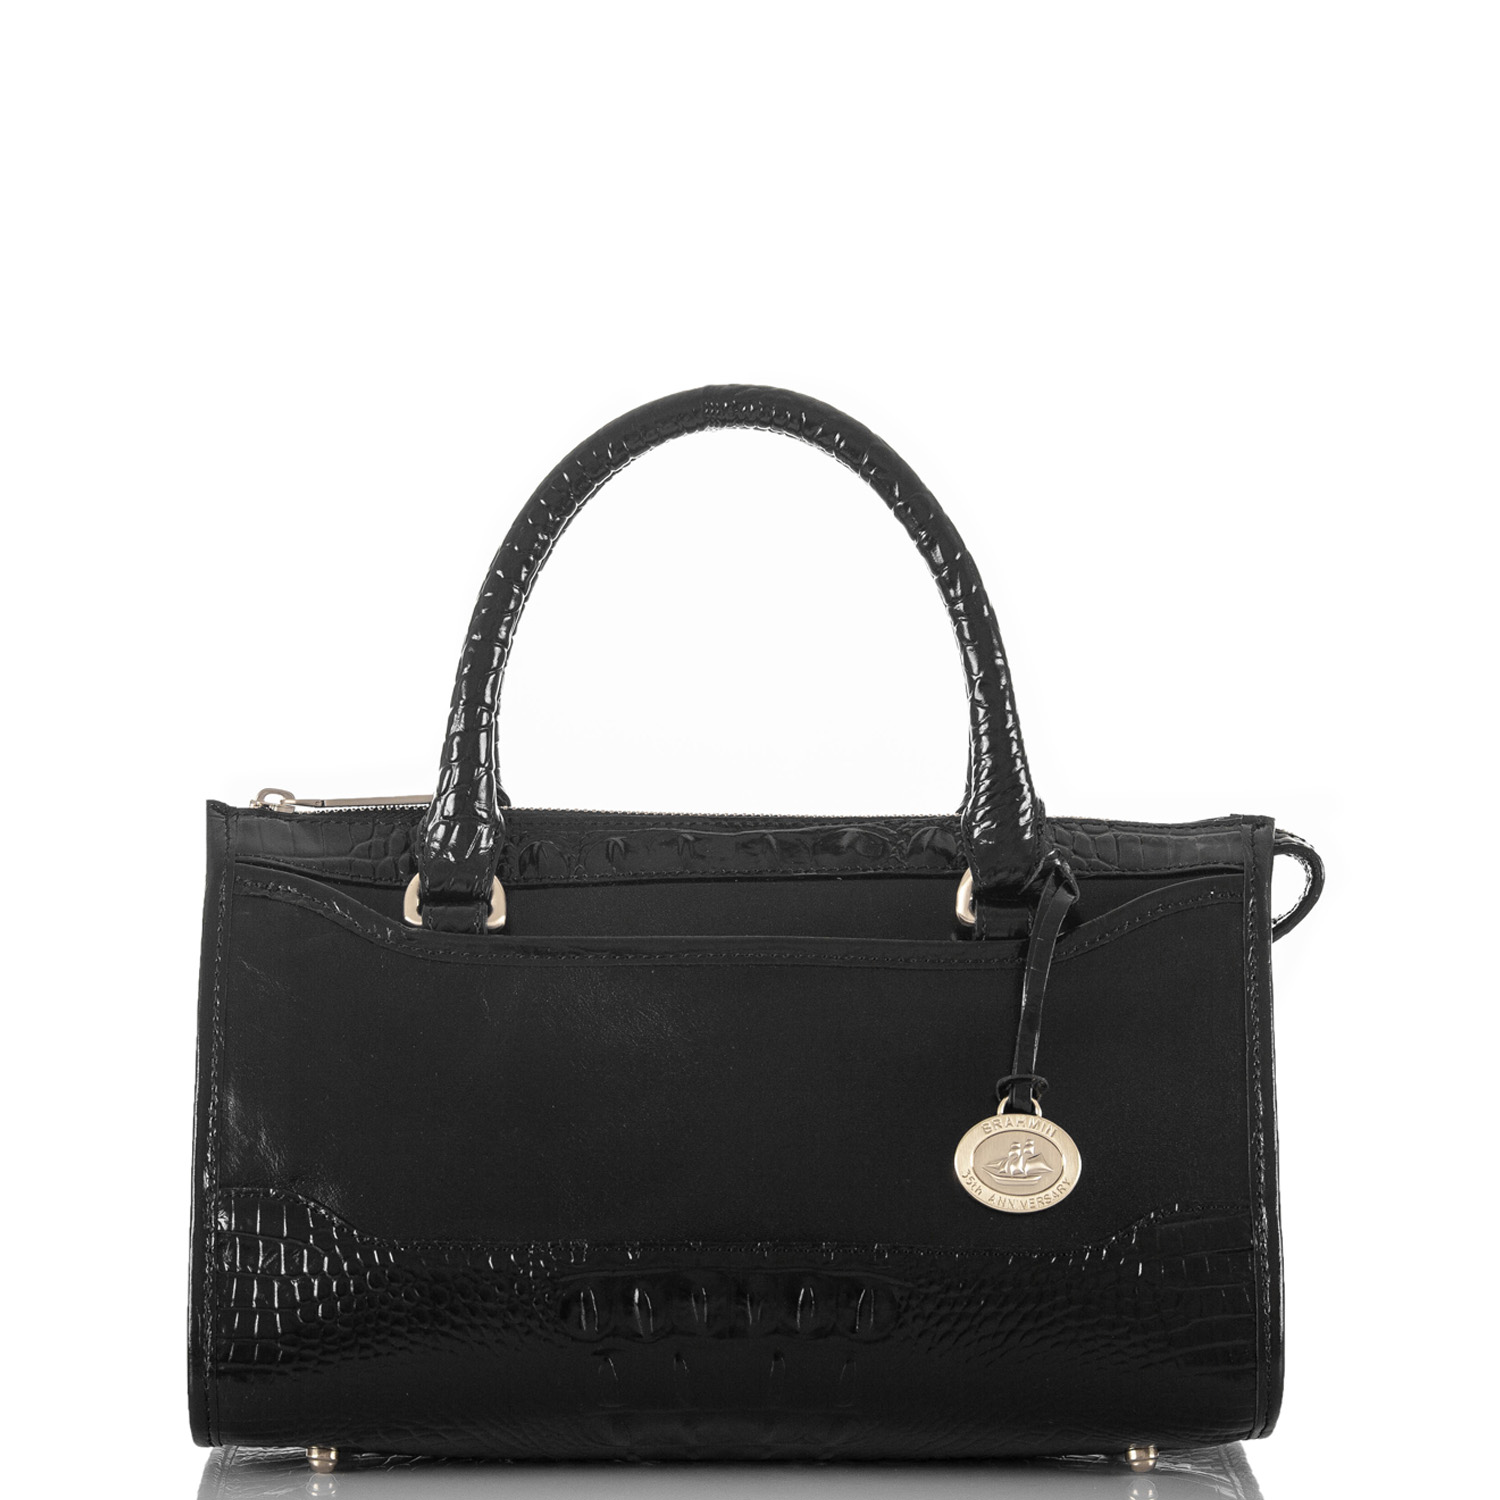 The Satchel Black Berkshire